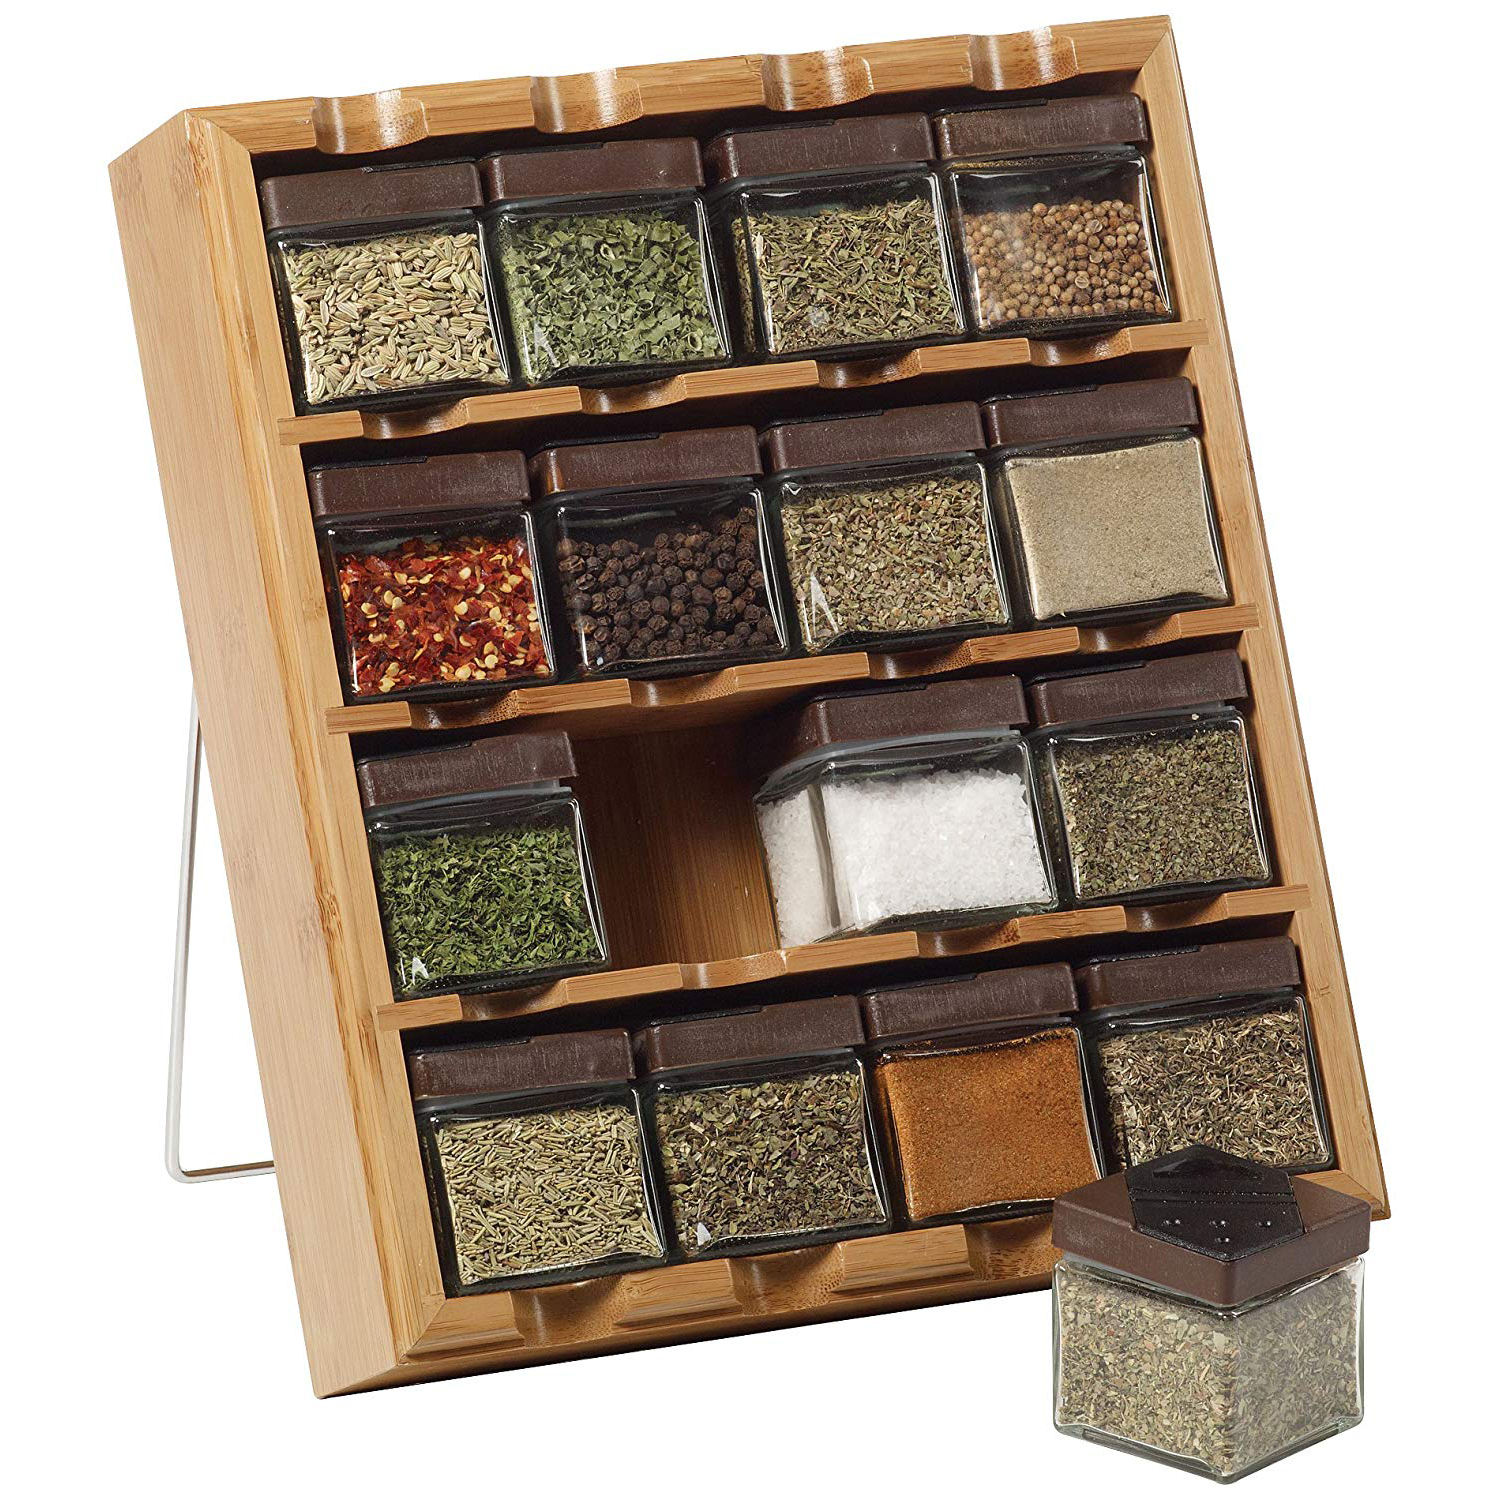 2020 Hot Selling Kitchen 16 Cube Spice Rack 4 Tier Herb And Spice Shelf Bamboo Mounted Spice storage holders